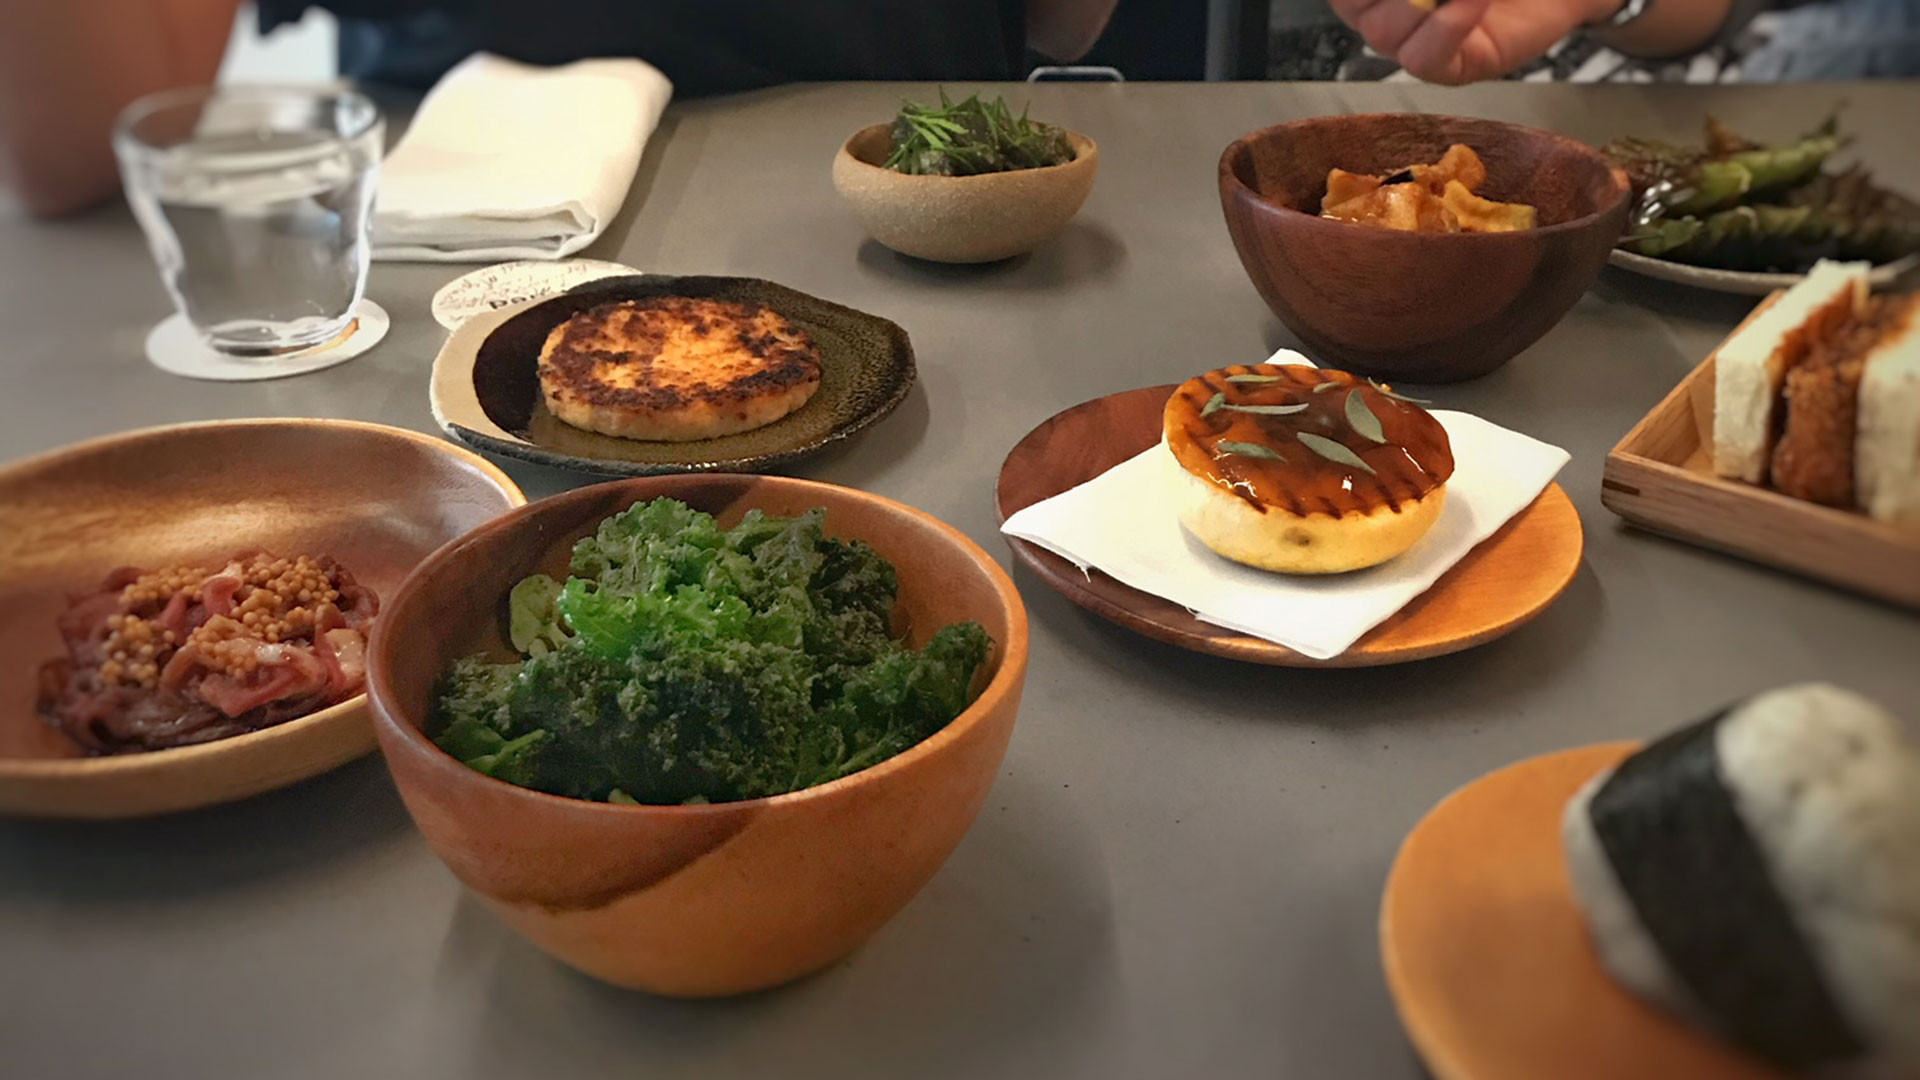 Selection of dishes from Untitled's day-to-day menu